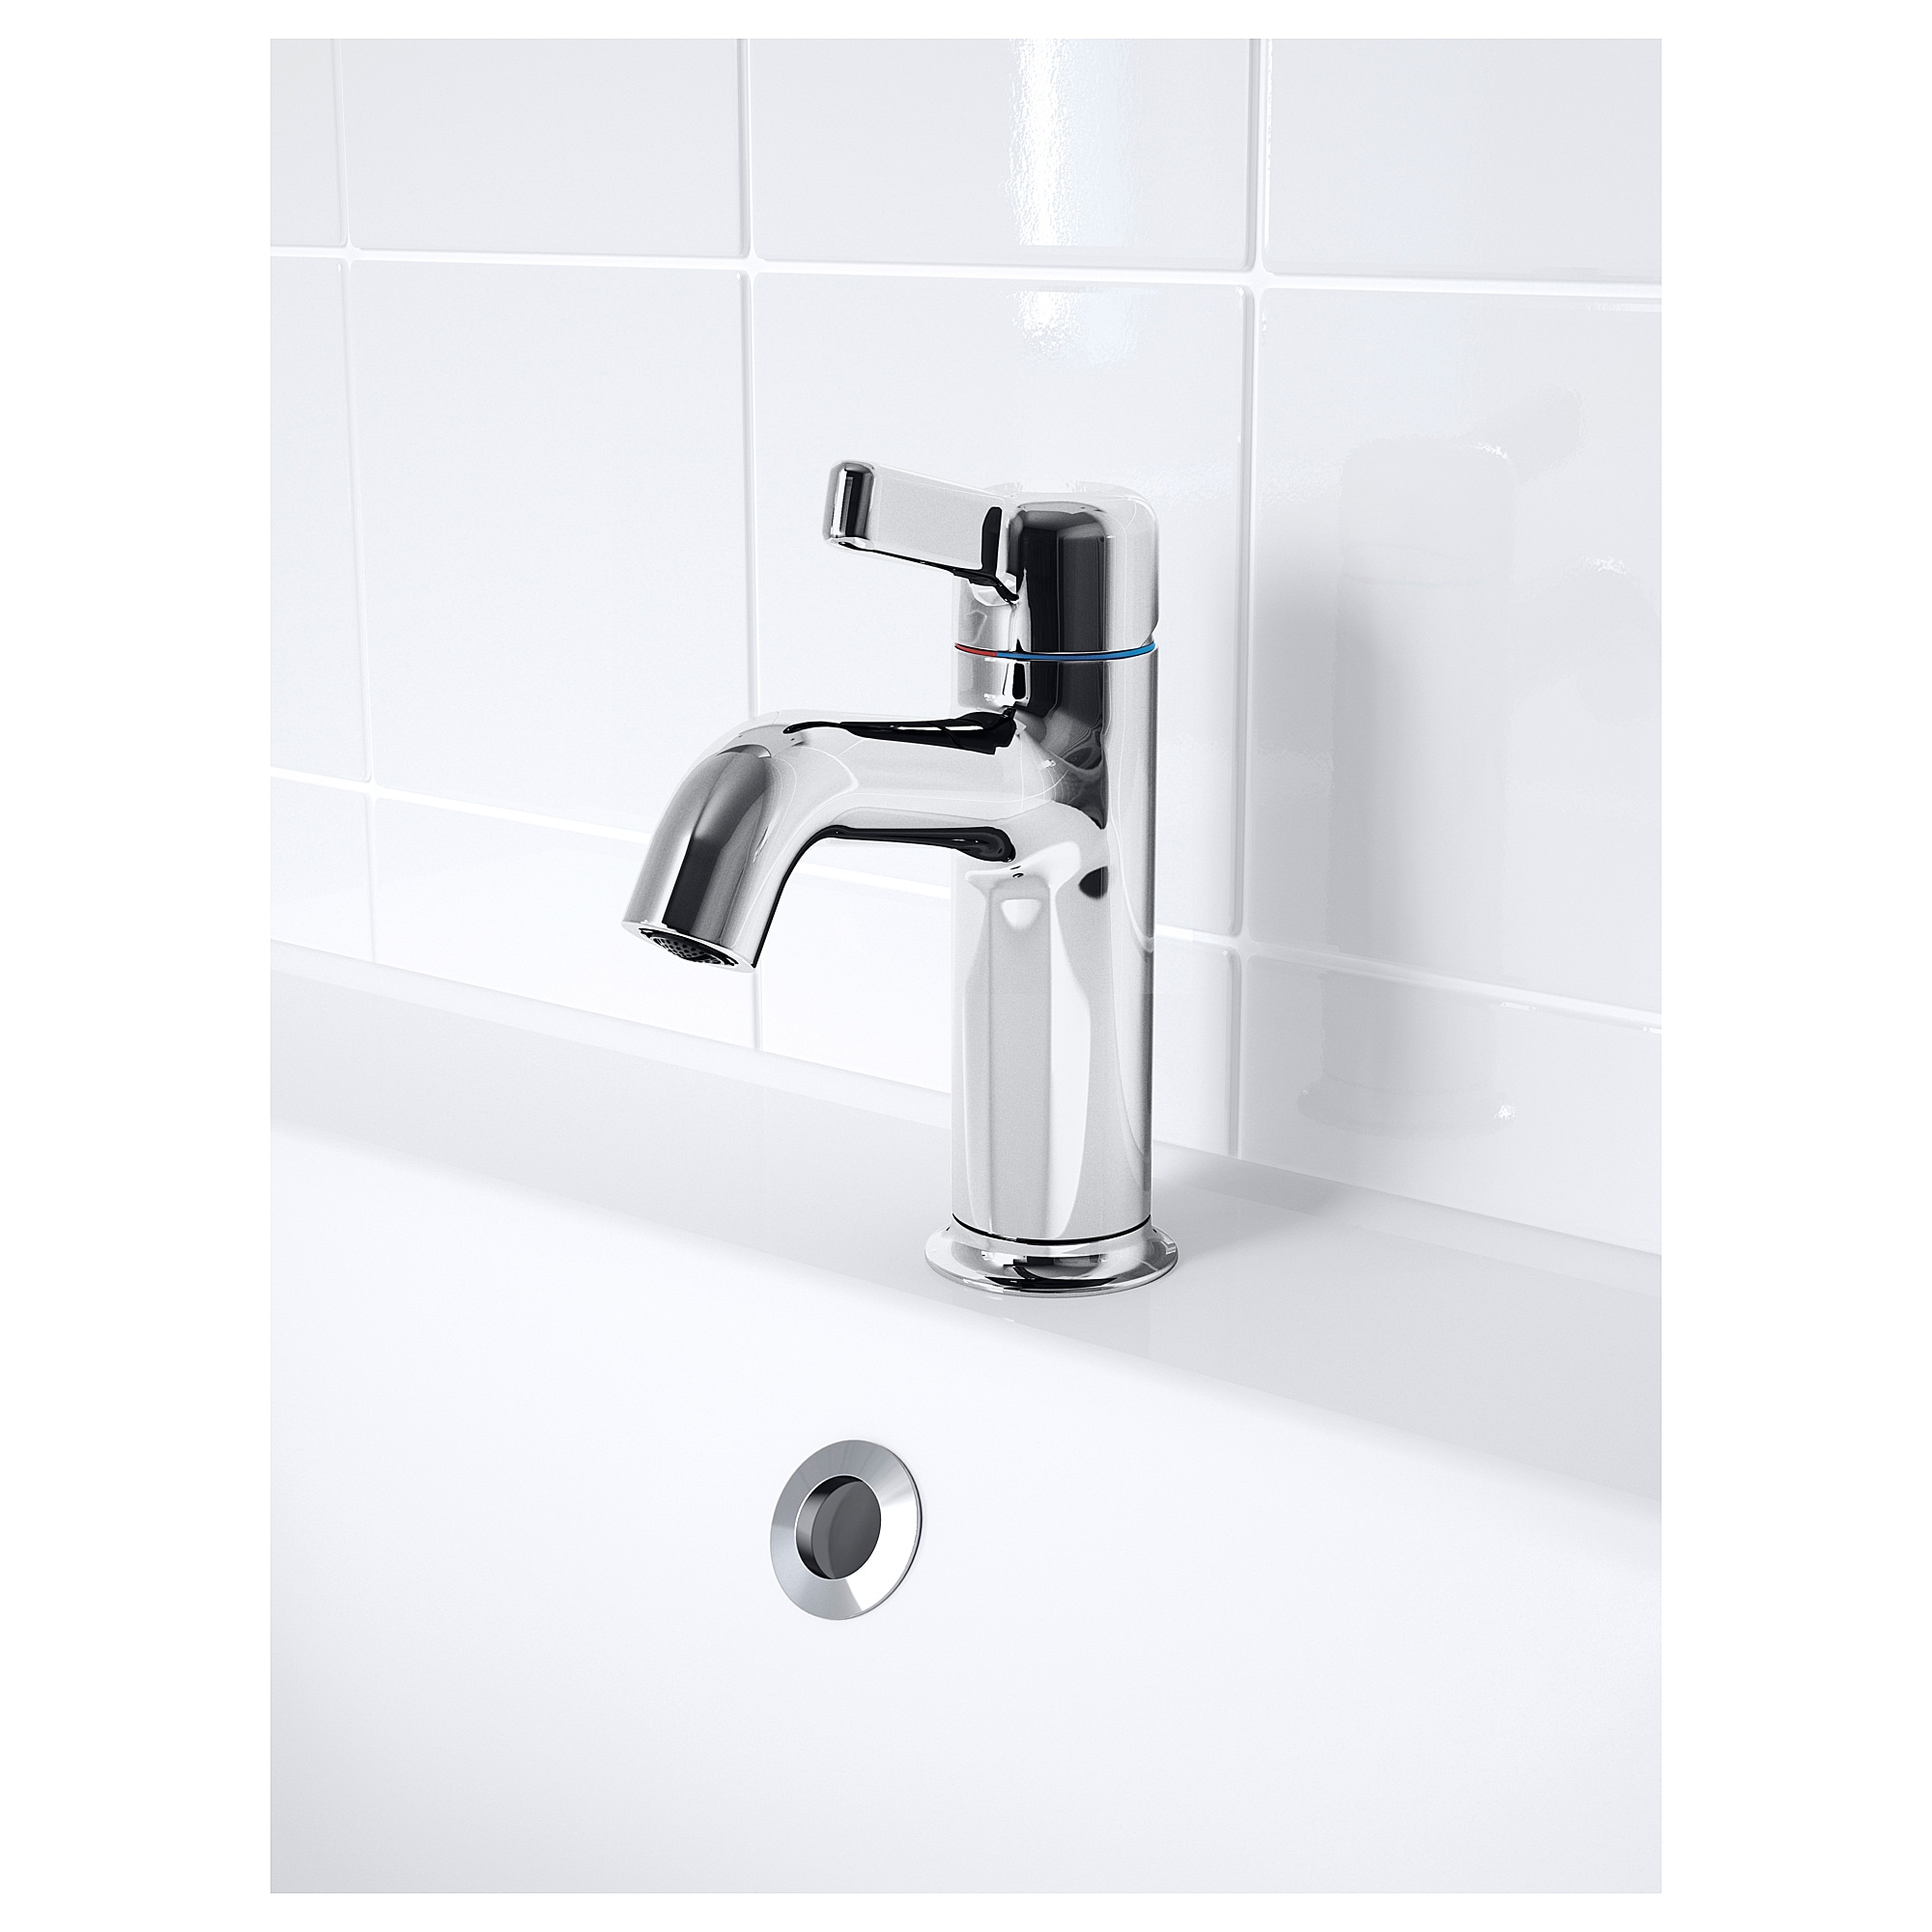 VOXNAN Bath faucet with strainer - IKEA